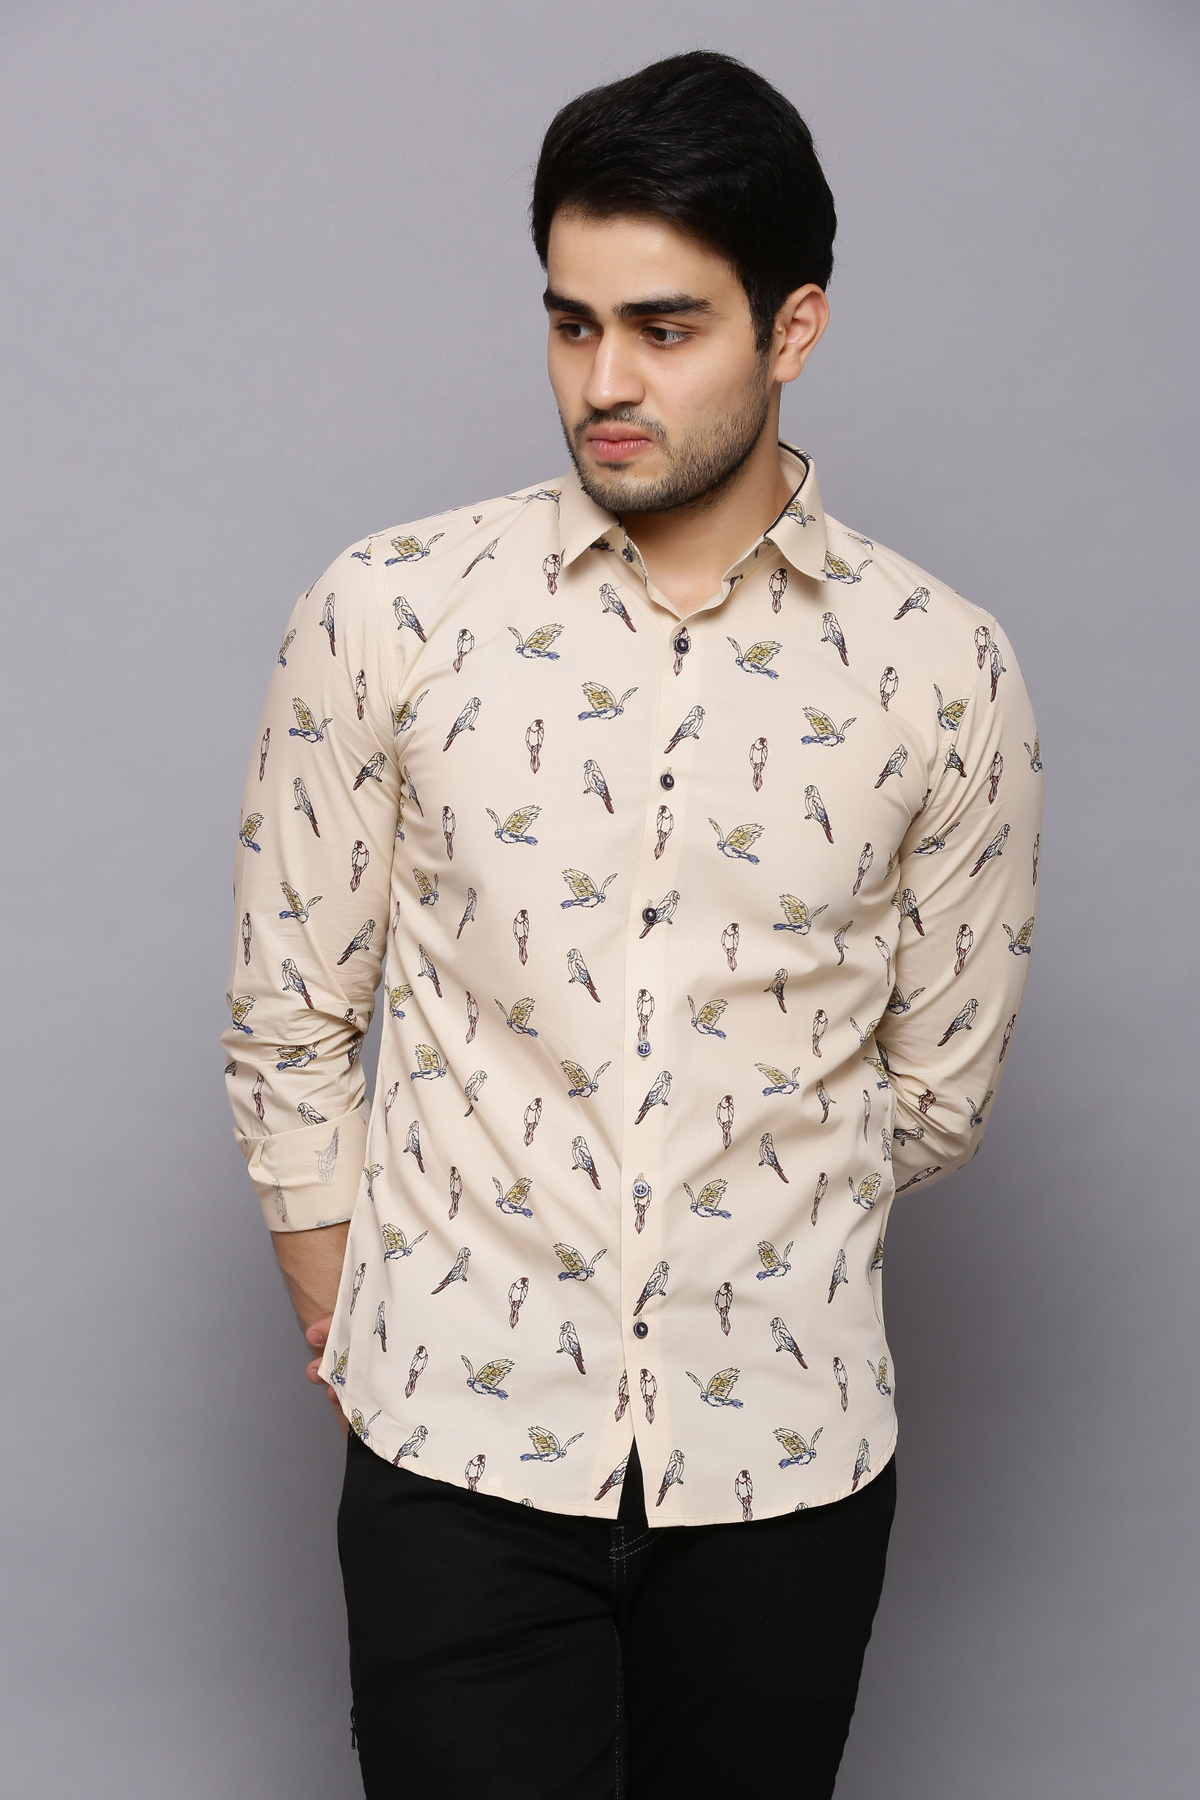 Fly Flew Flown Beige Shirt